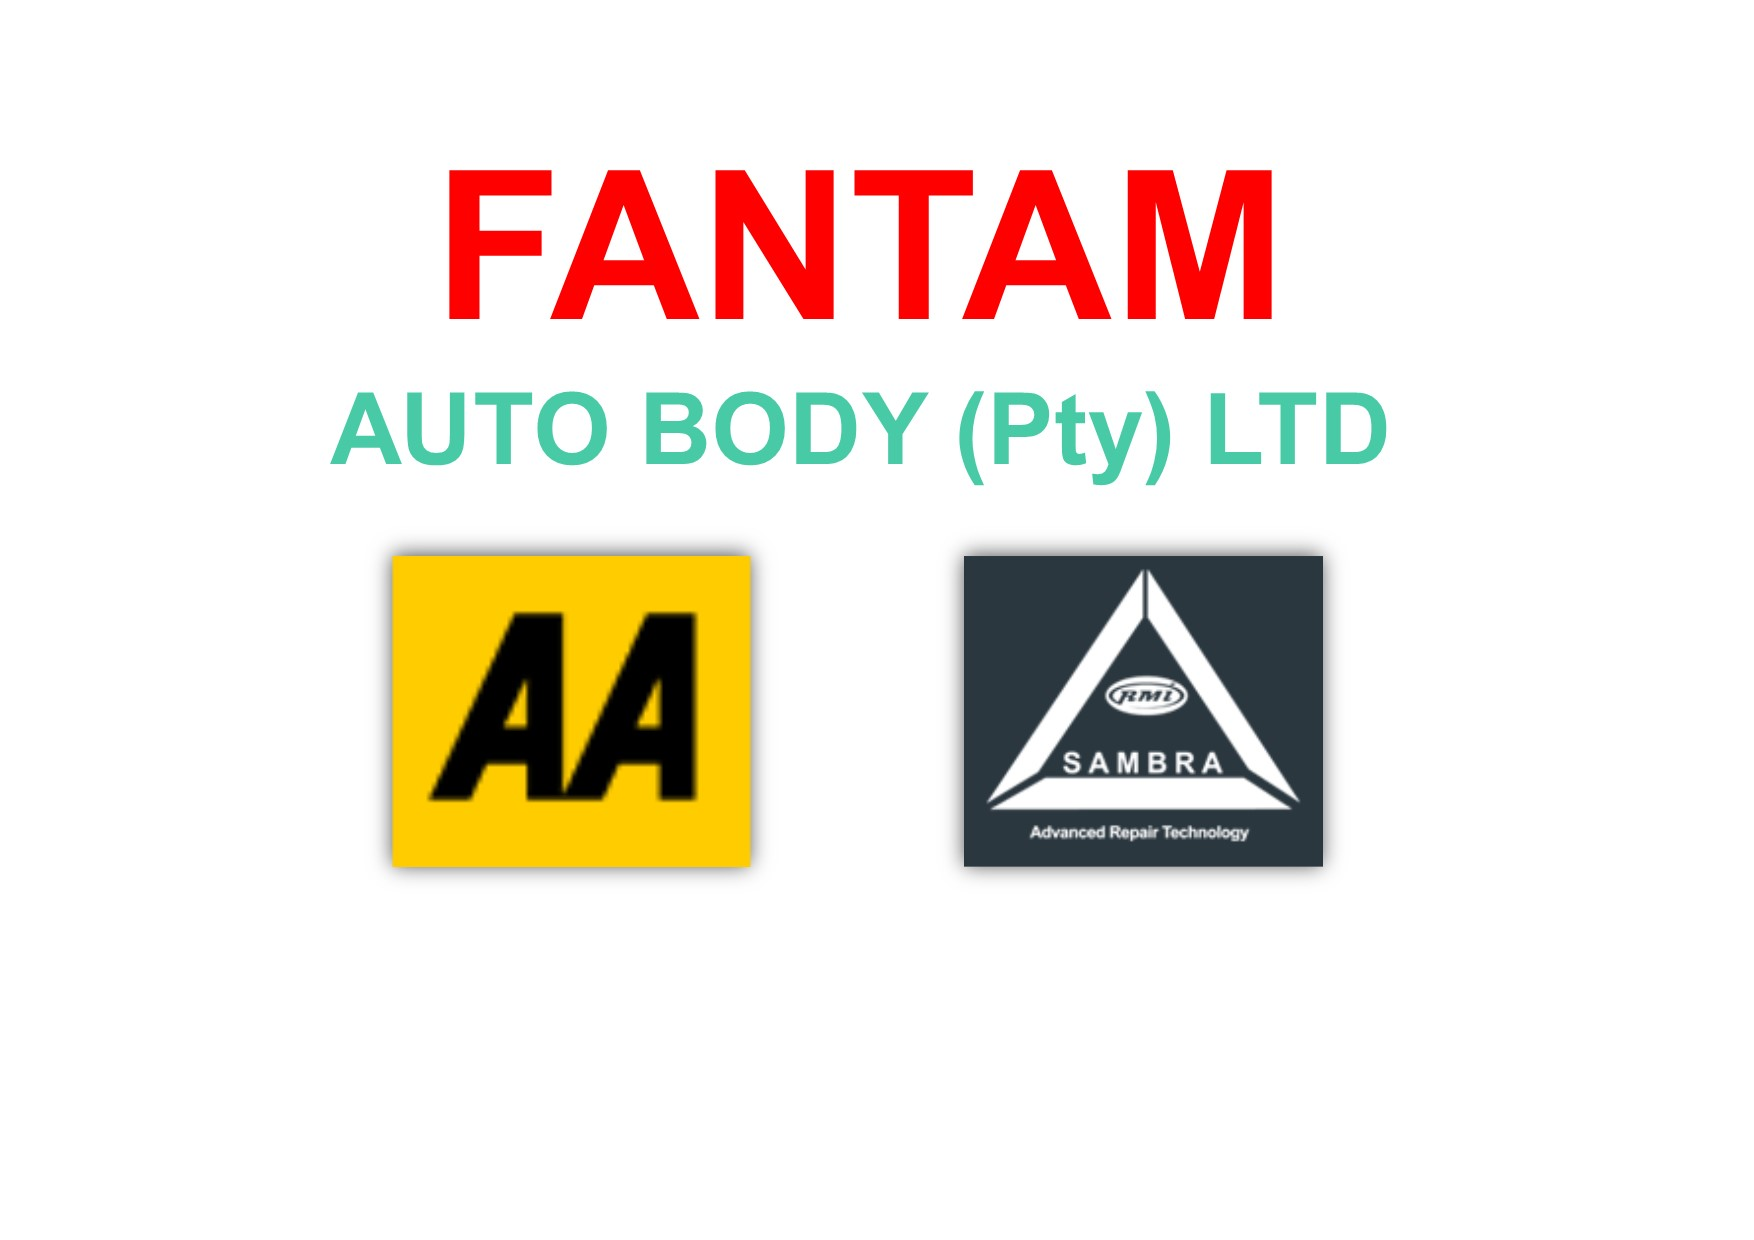 Logo of Fantam Auto Body